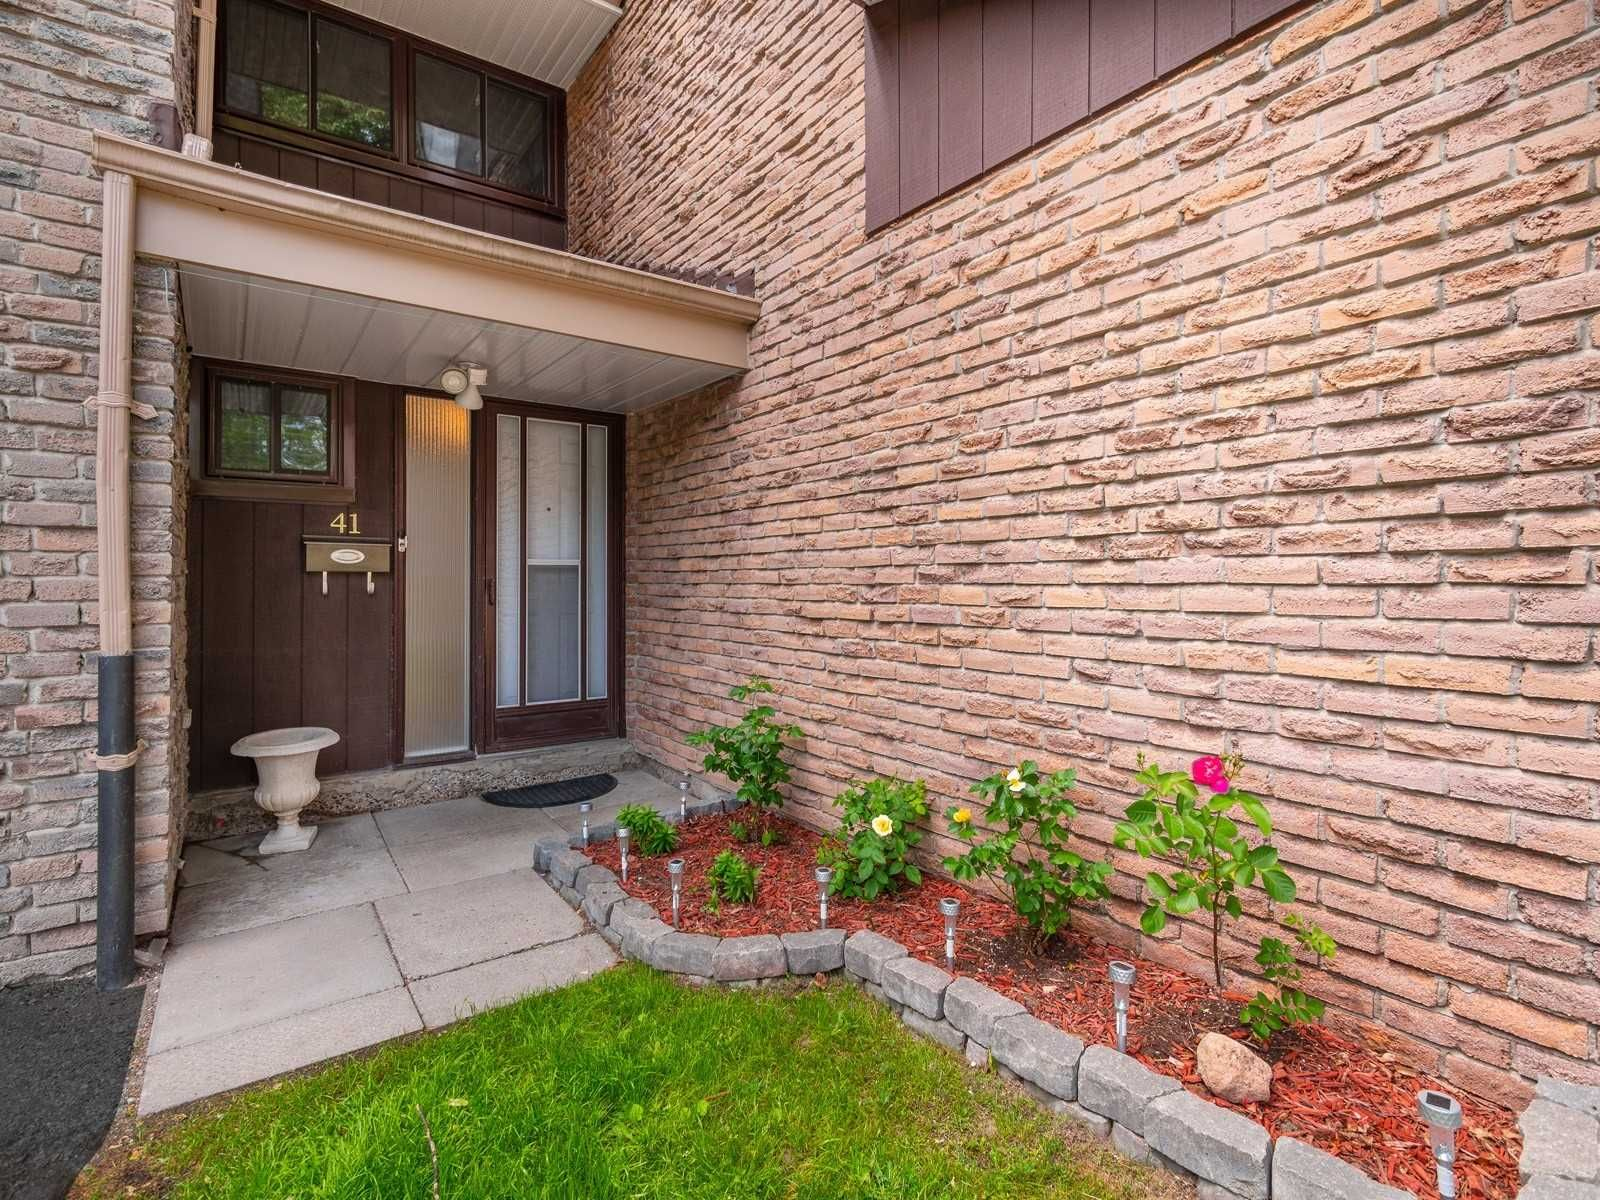 1958 Rosefield Rd, unit 41 for sale in Toronto - image #2